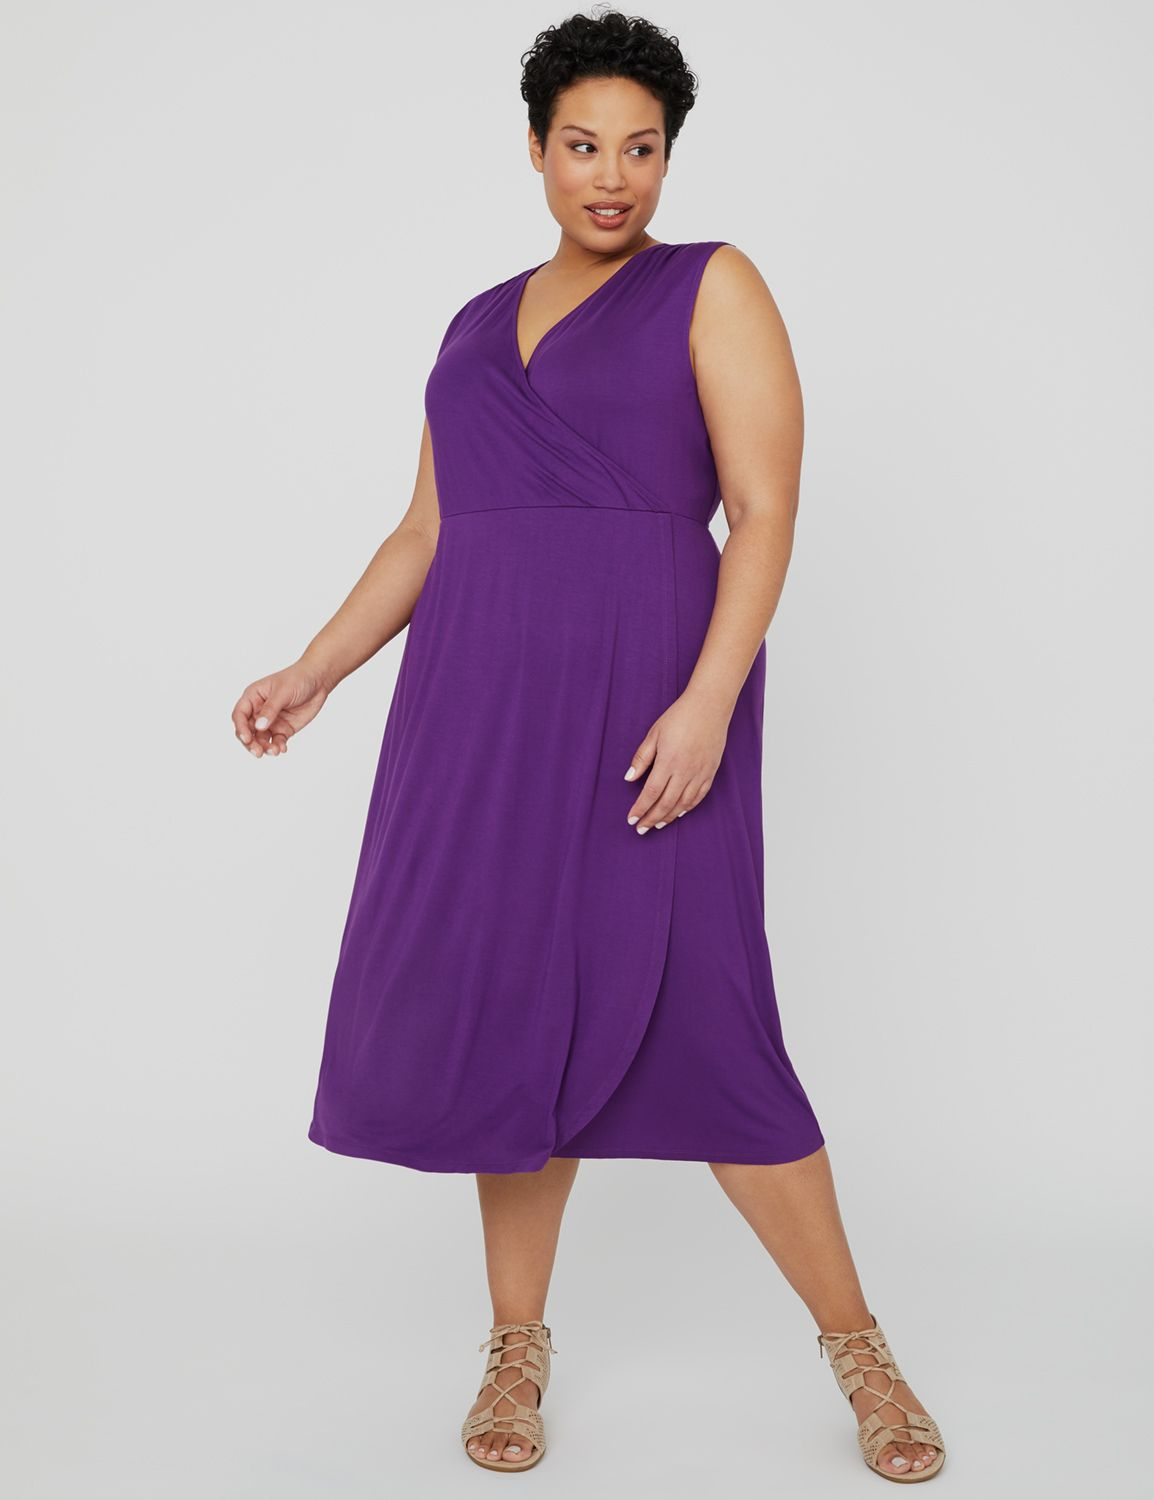 Riverview Wrap Dress 1088151 Vneck Front and Back Maxi E MP-300102359